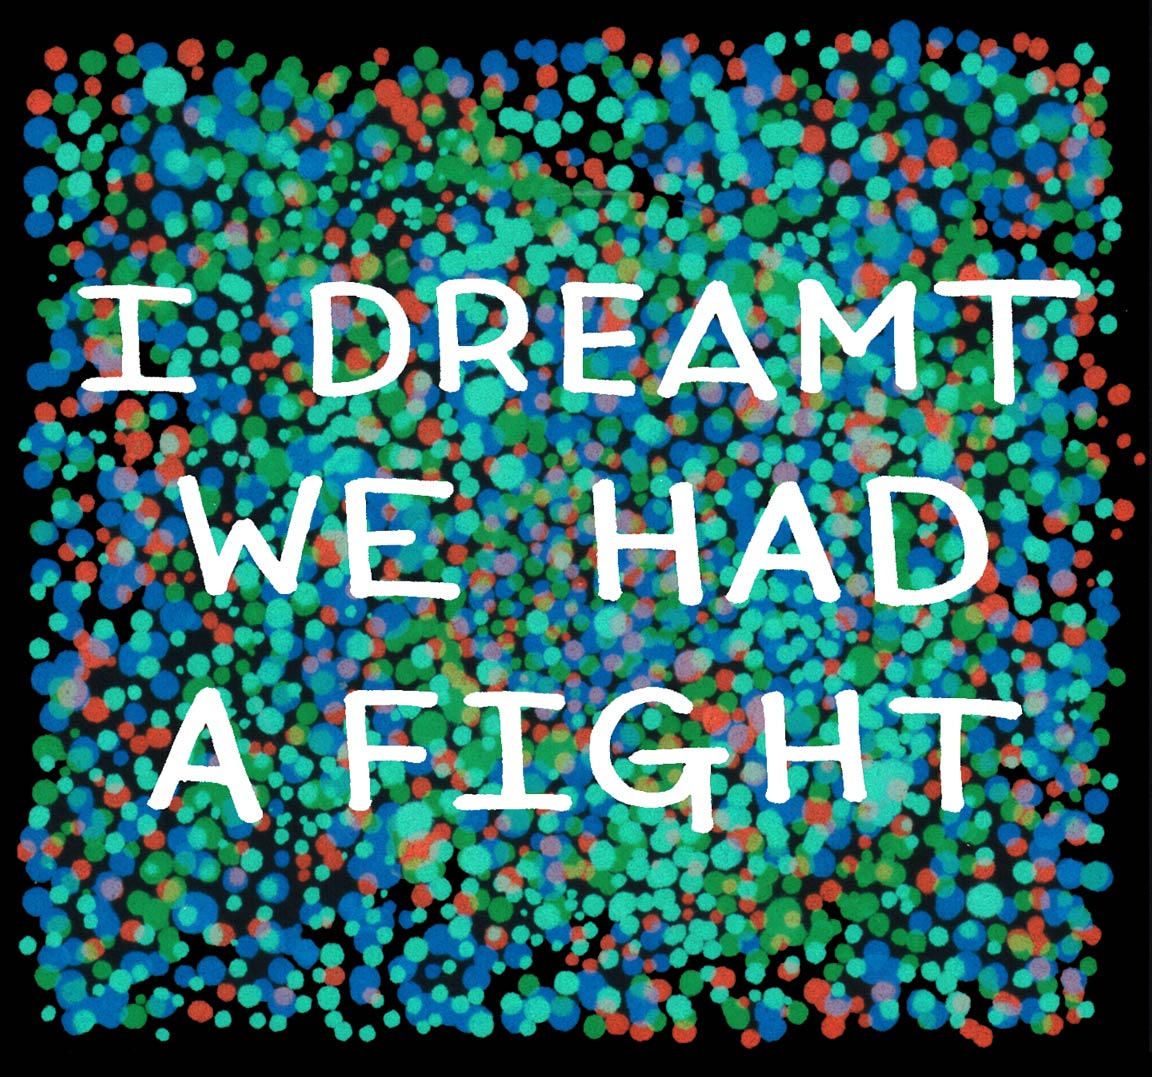 I DREAMT WE HAD A FIGHT  (2019); Copic Sketch markers, Sharpie on illustration paper, edited in Photoshop